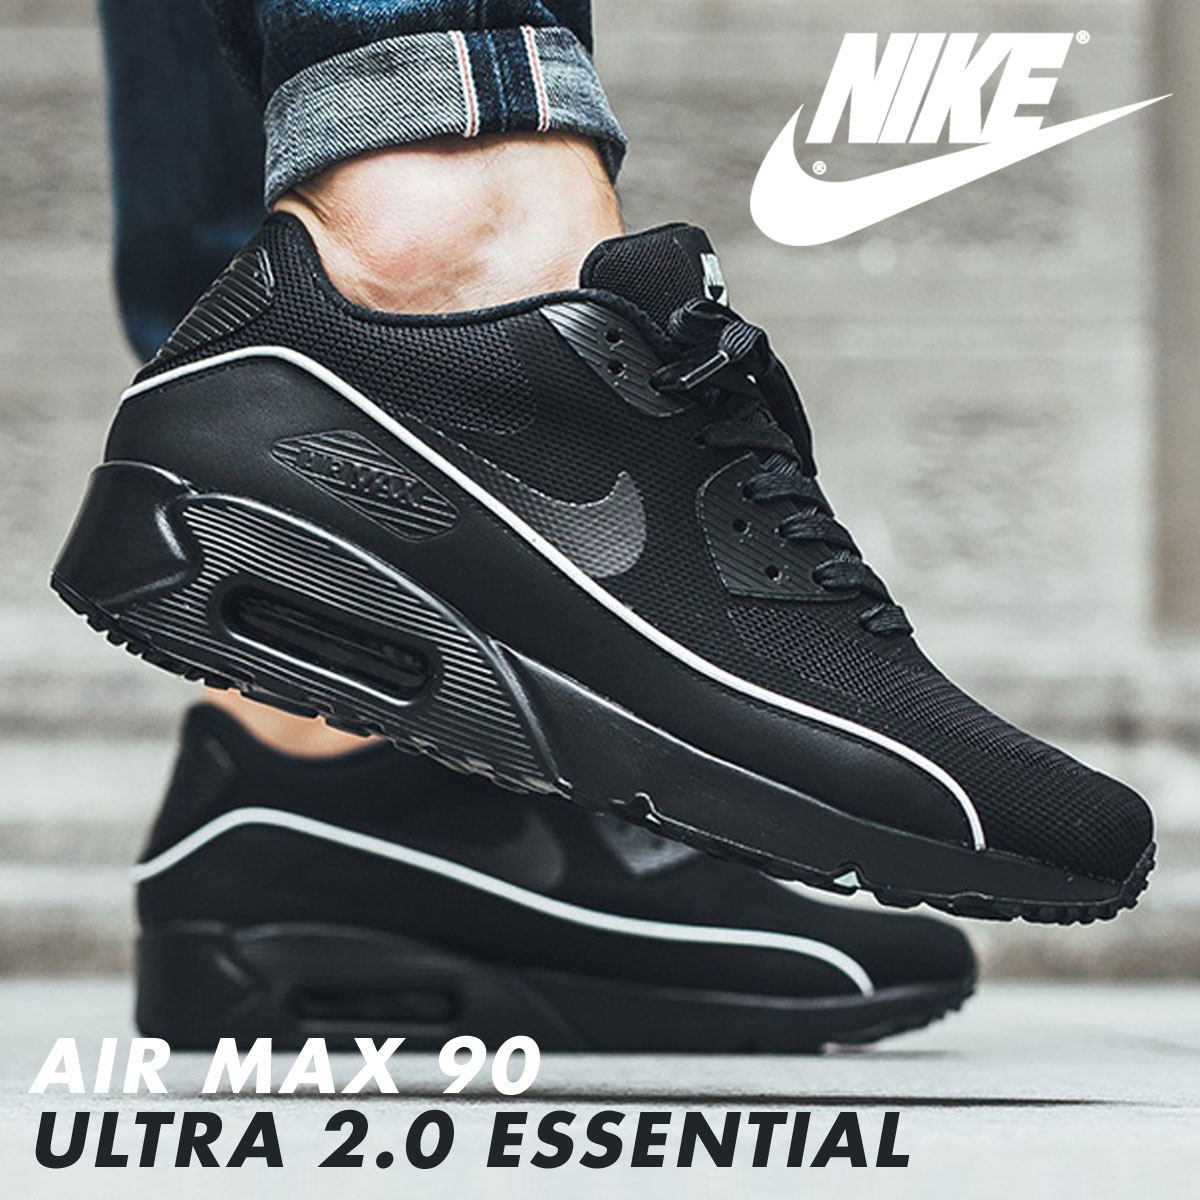 33efe7a2ab ... Nike NIKE Air Max 90 essential ultra sneakers AIR MAX 90 ULTRA 2.0  ESSENTIAL 875,695- ...